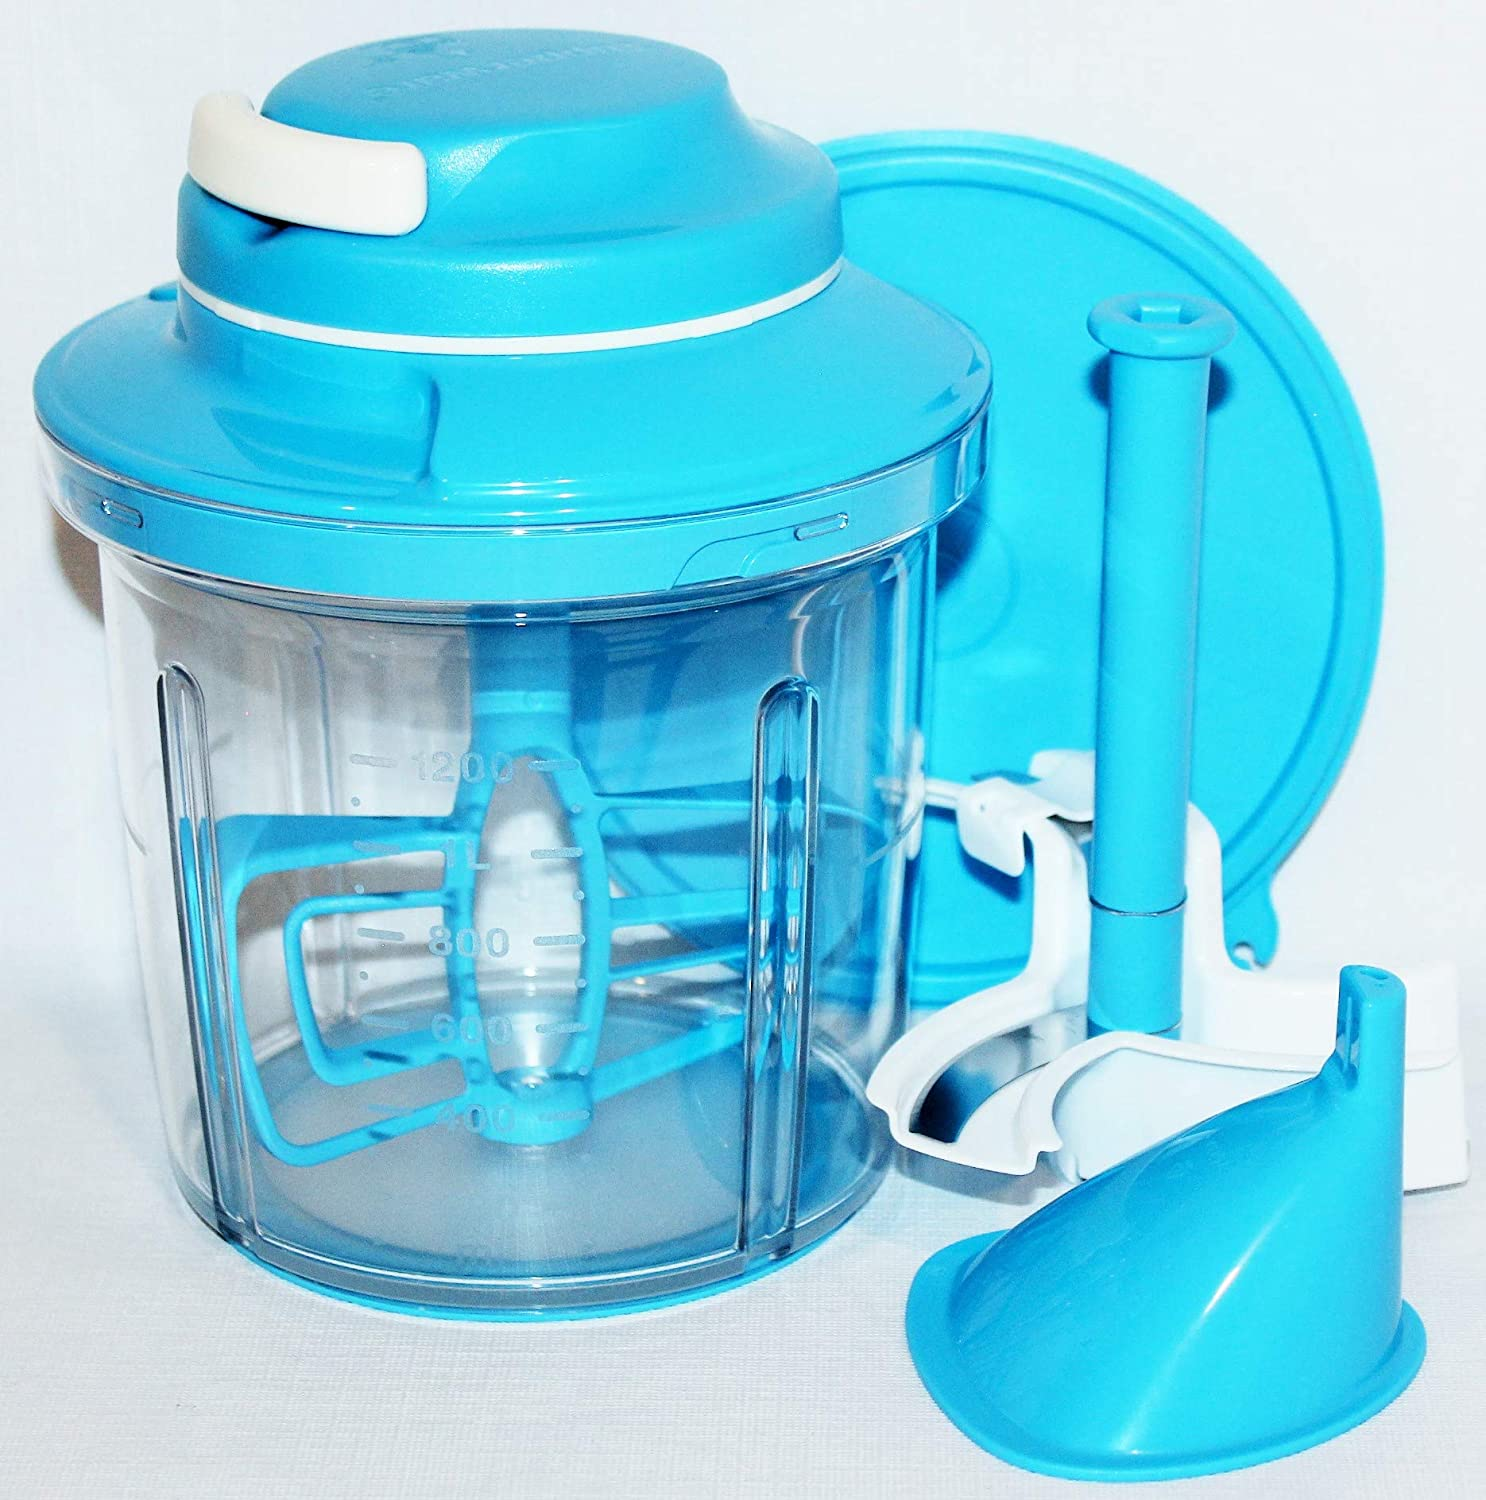 Tupperware Power Chef Pull-Cord System with Whisk and Blade Time Savers Salt Water Taffy Blue